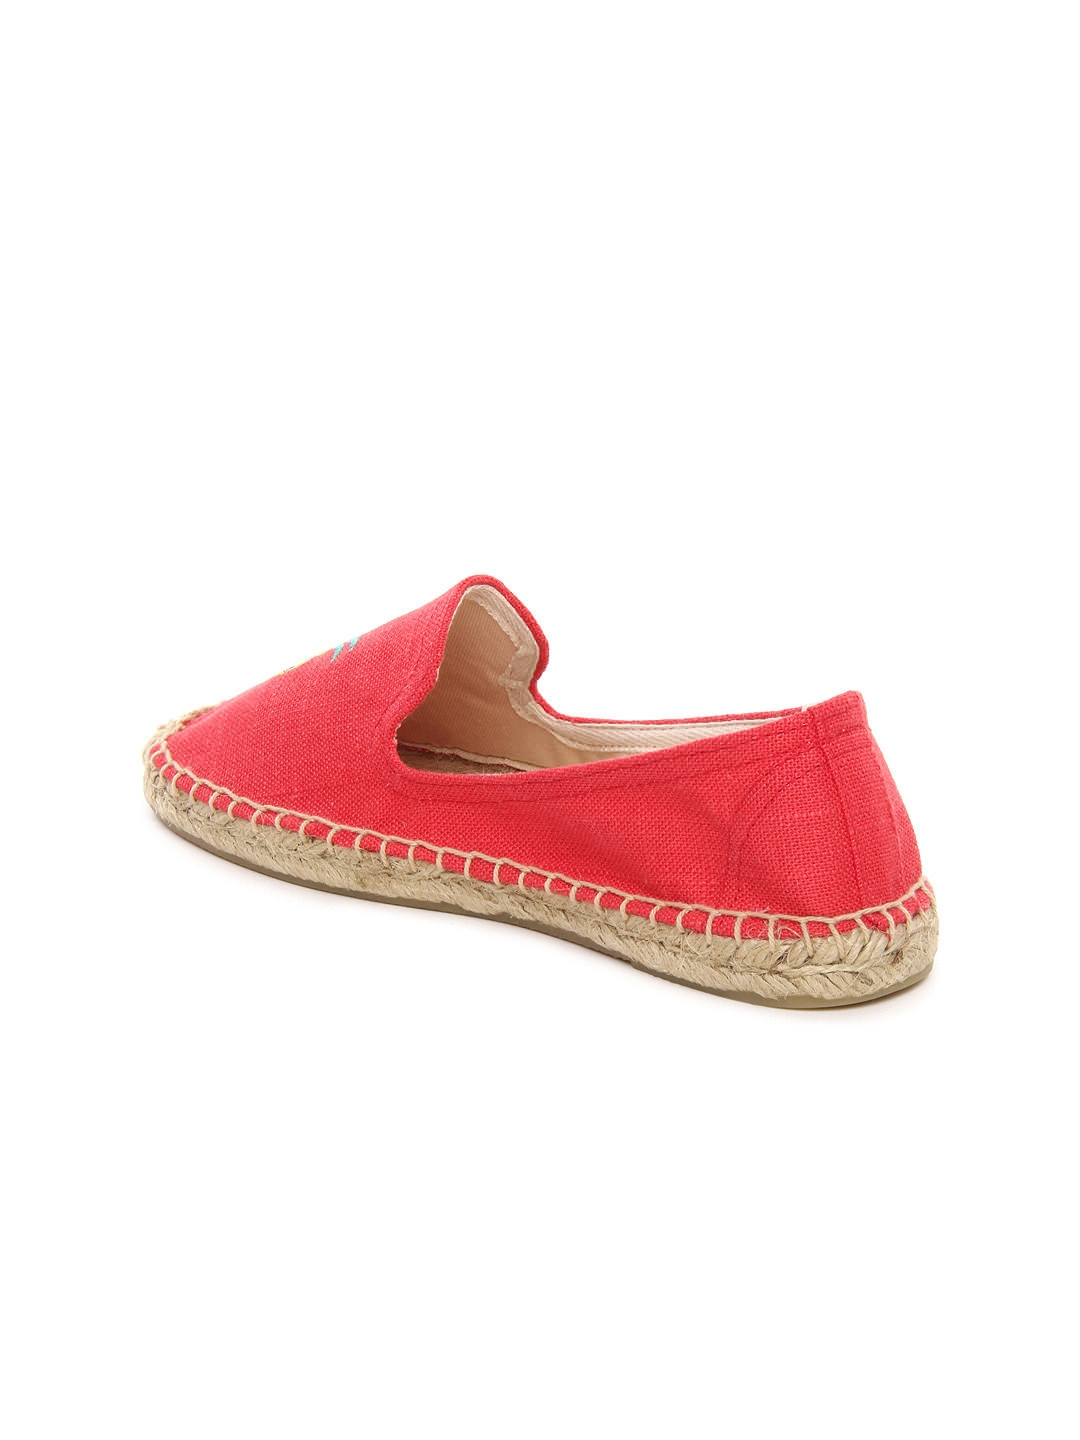 Where To Buy Soludos Shoes